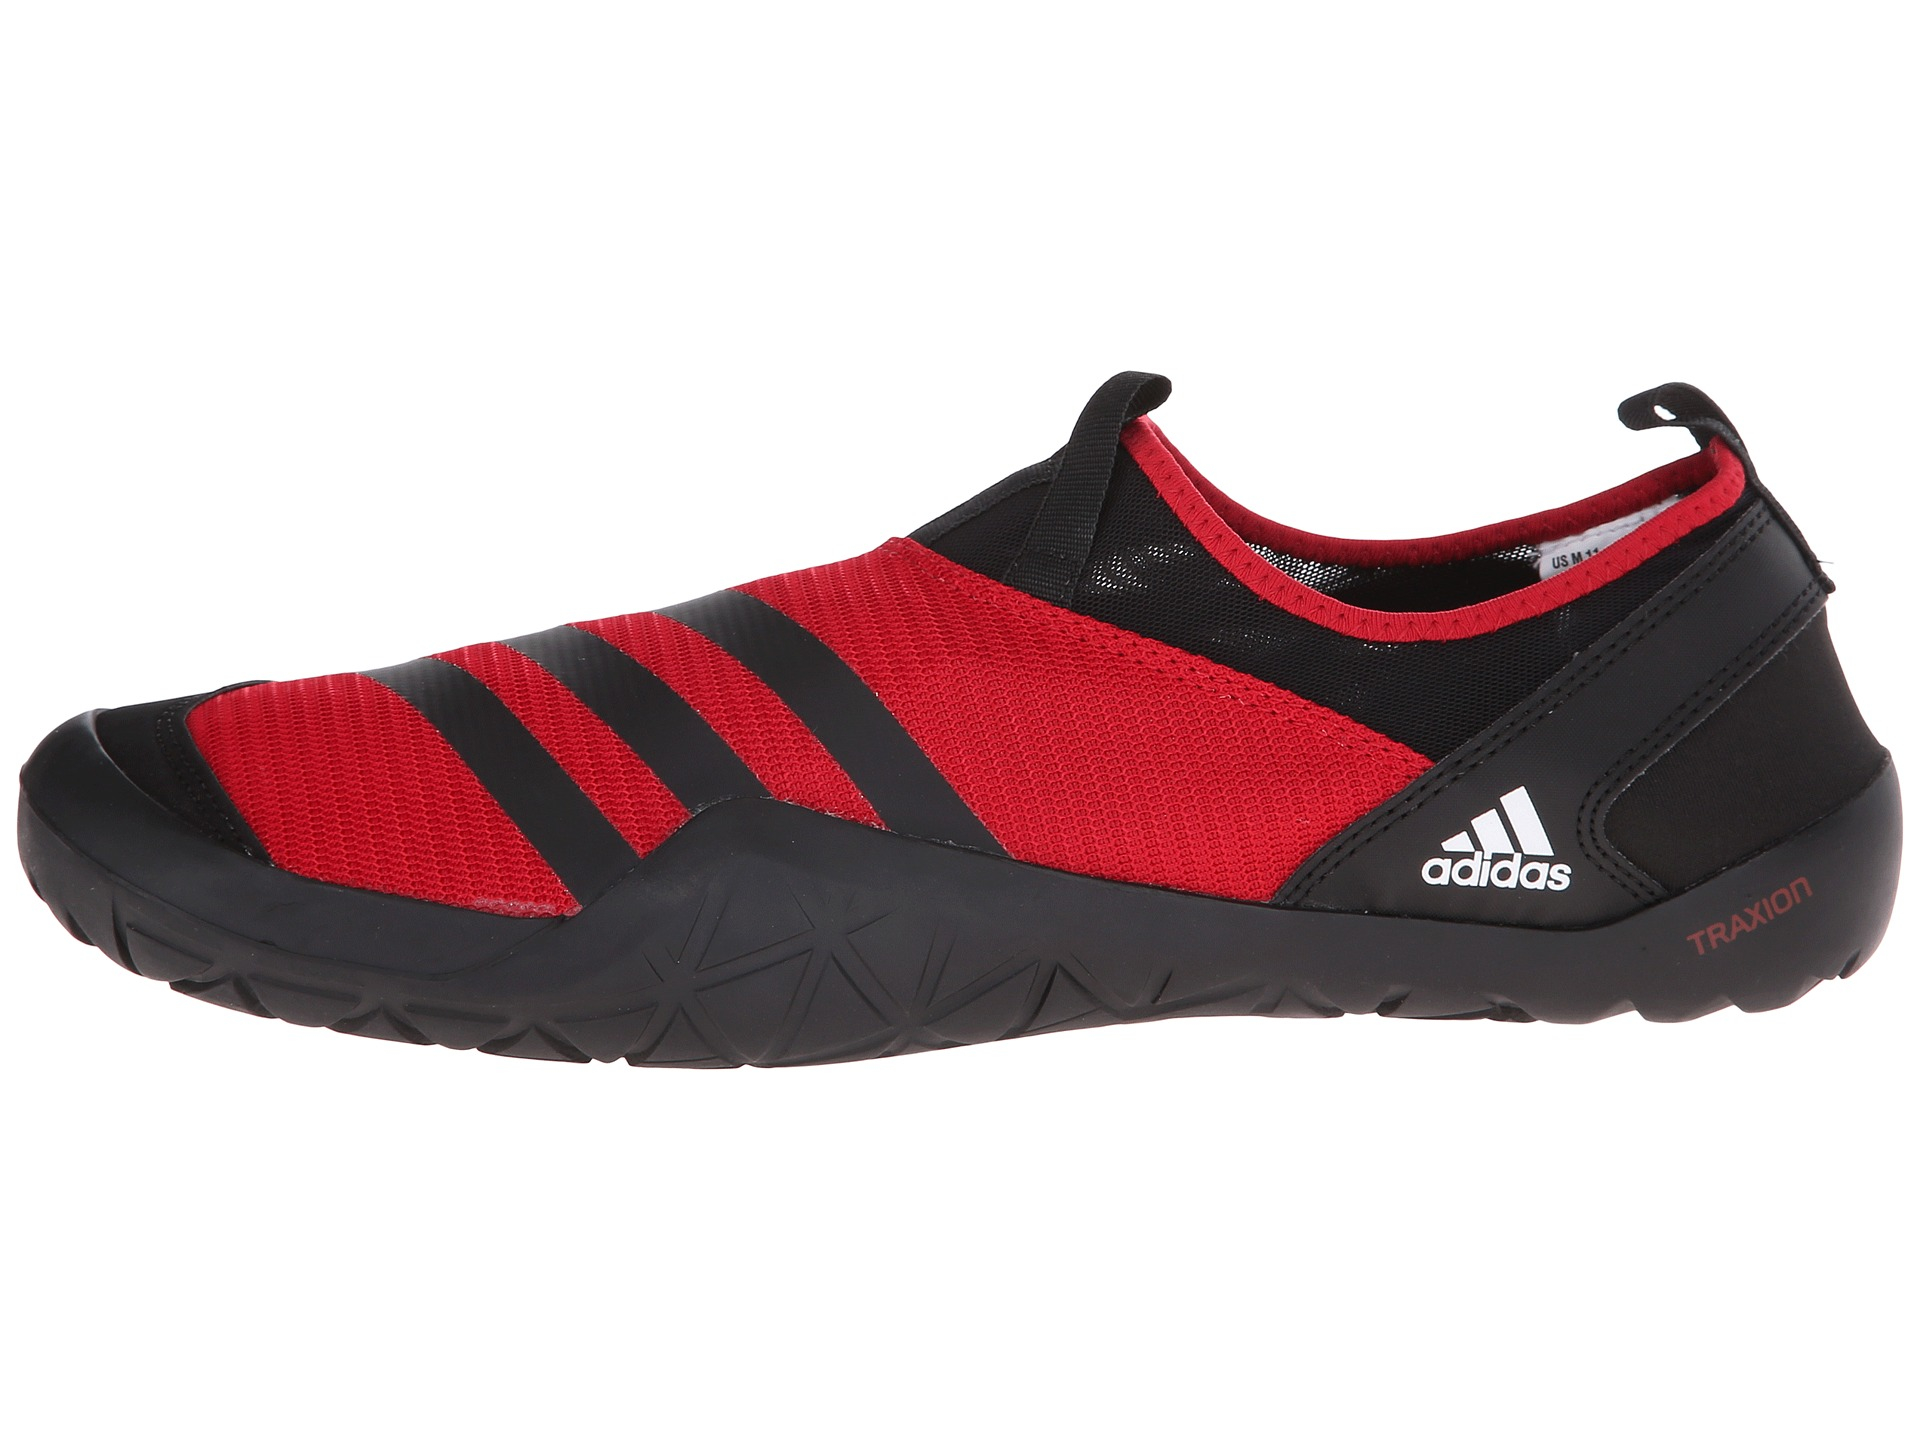 Lyst Adidas Originals Climacool® Jawpaw Jawpaw Jawpaw Slip on in Red for Men 6ec600